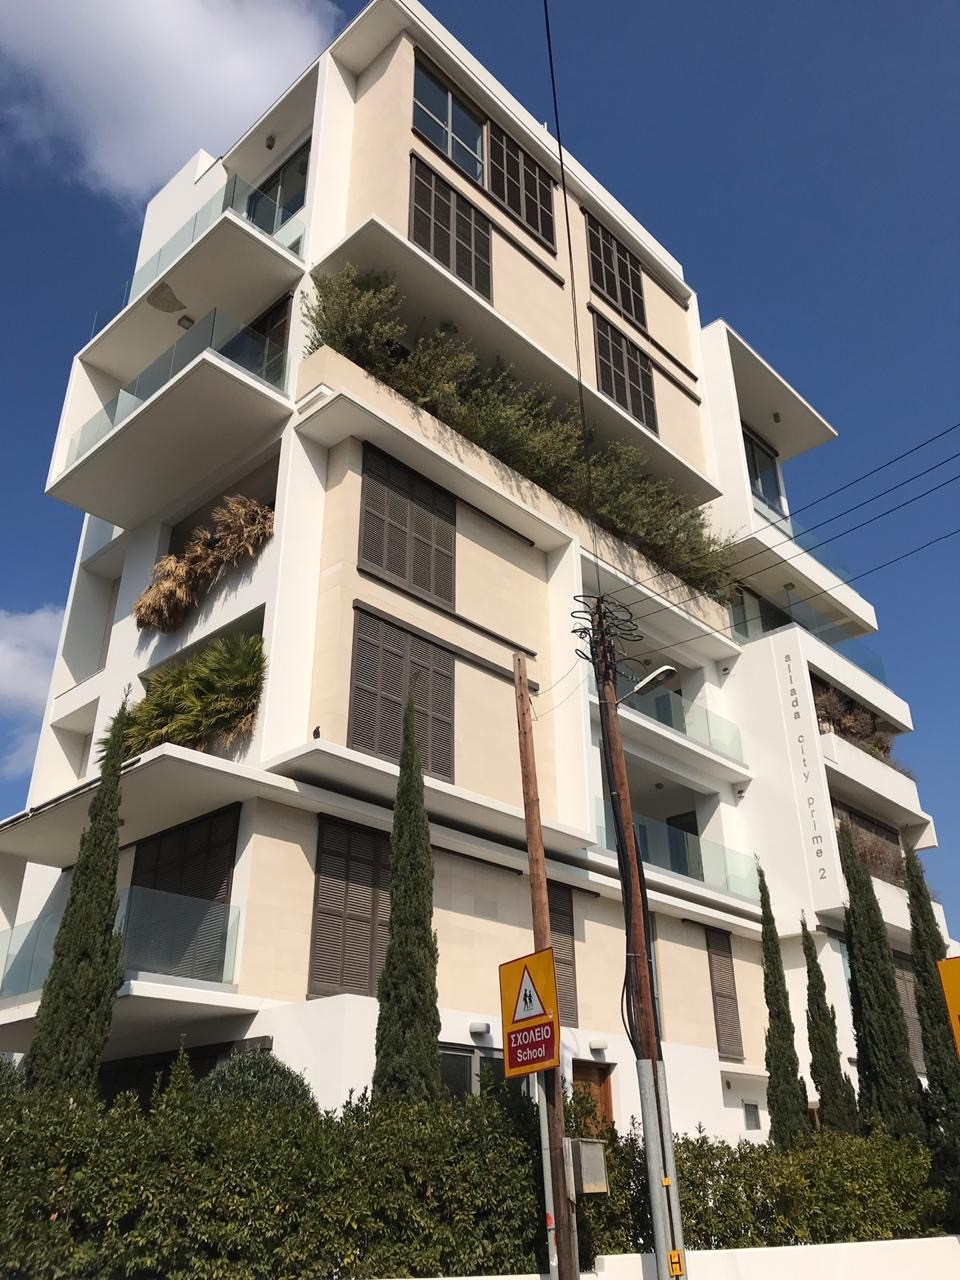 Apartment (Flat) in City Center, Nicosia for Sale  3 Bedroom.....